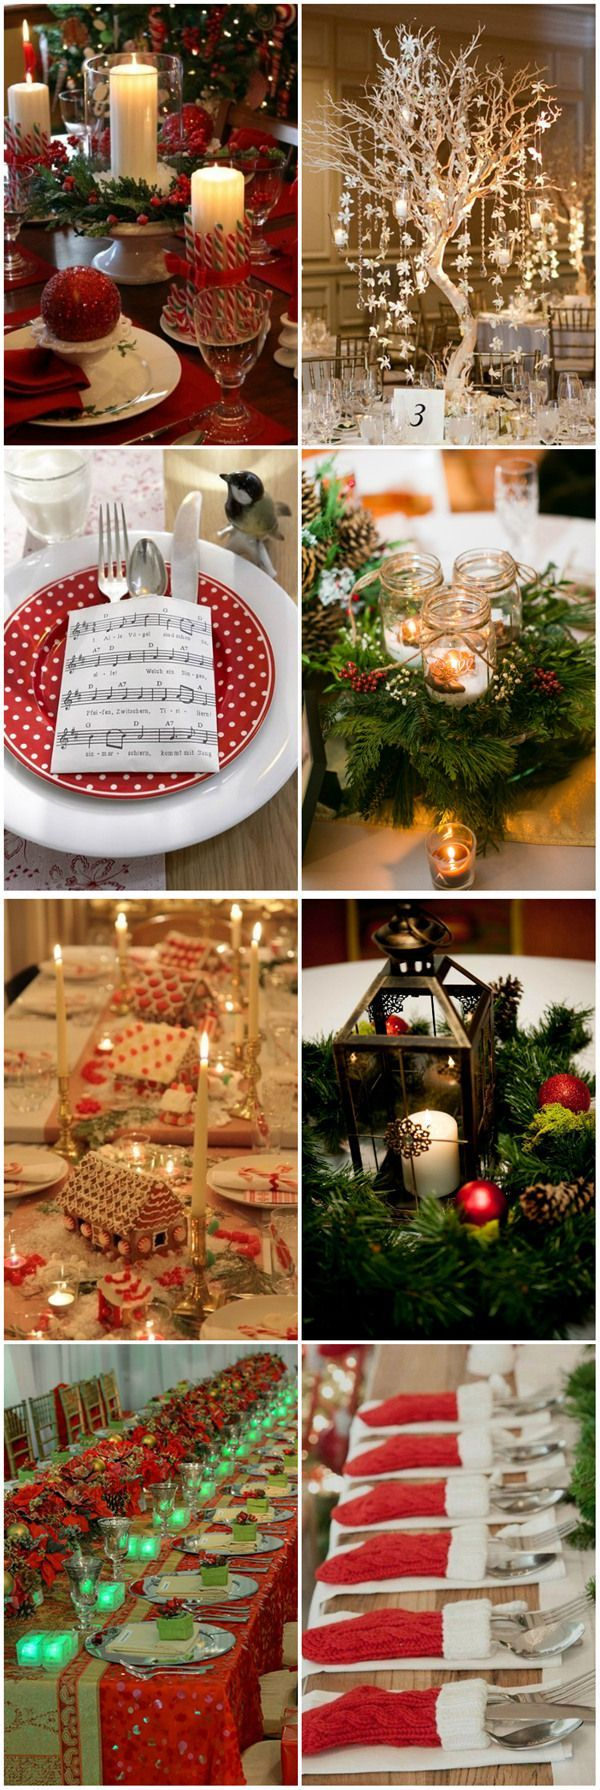 36 impressive christmas table centerpieces decoholic - Christmas Inspired Wedding Centerpiece Ideas